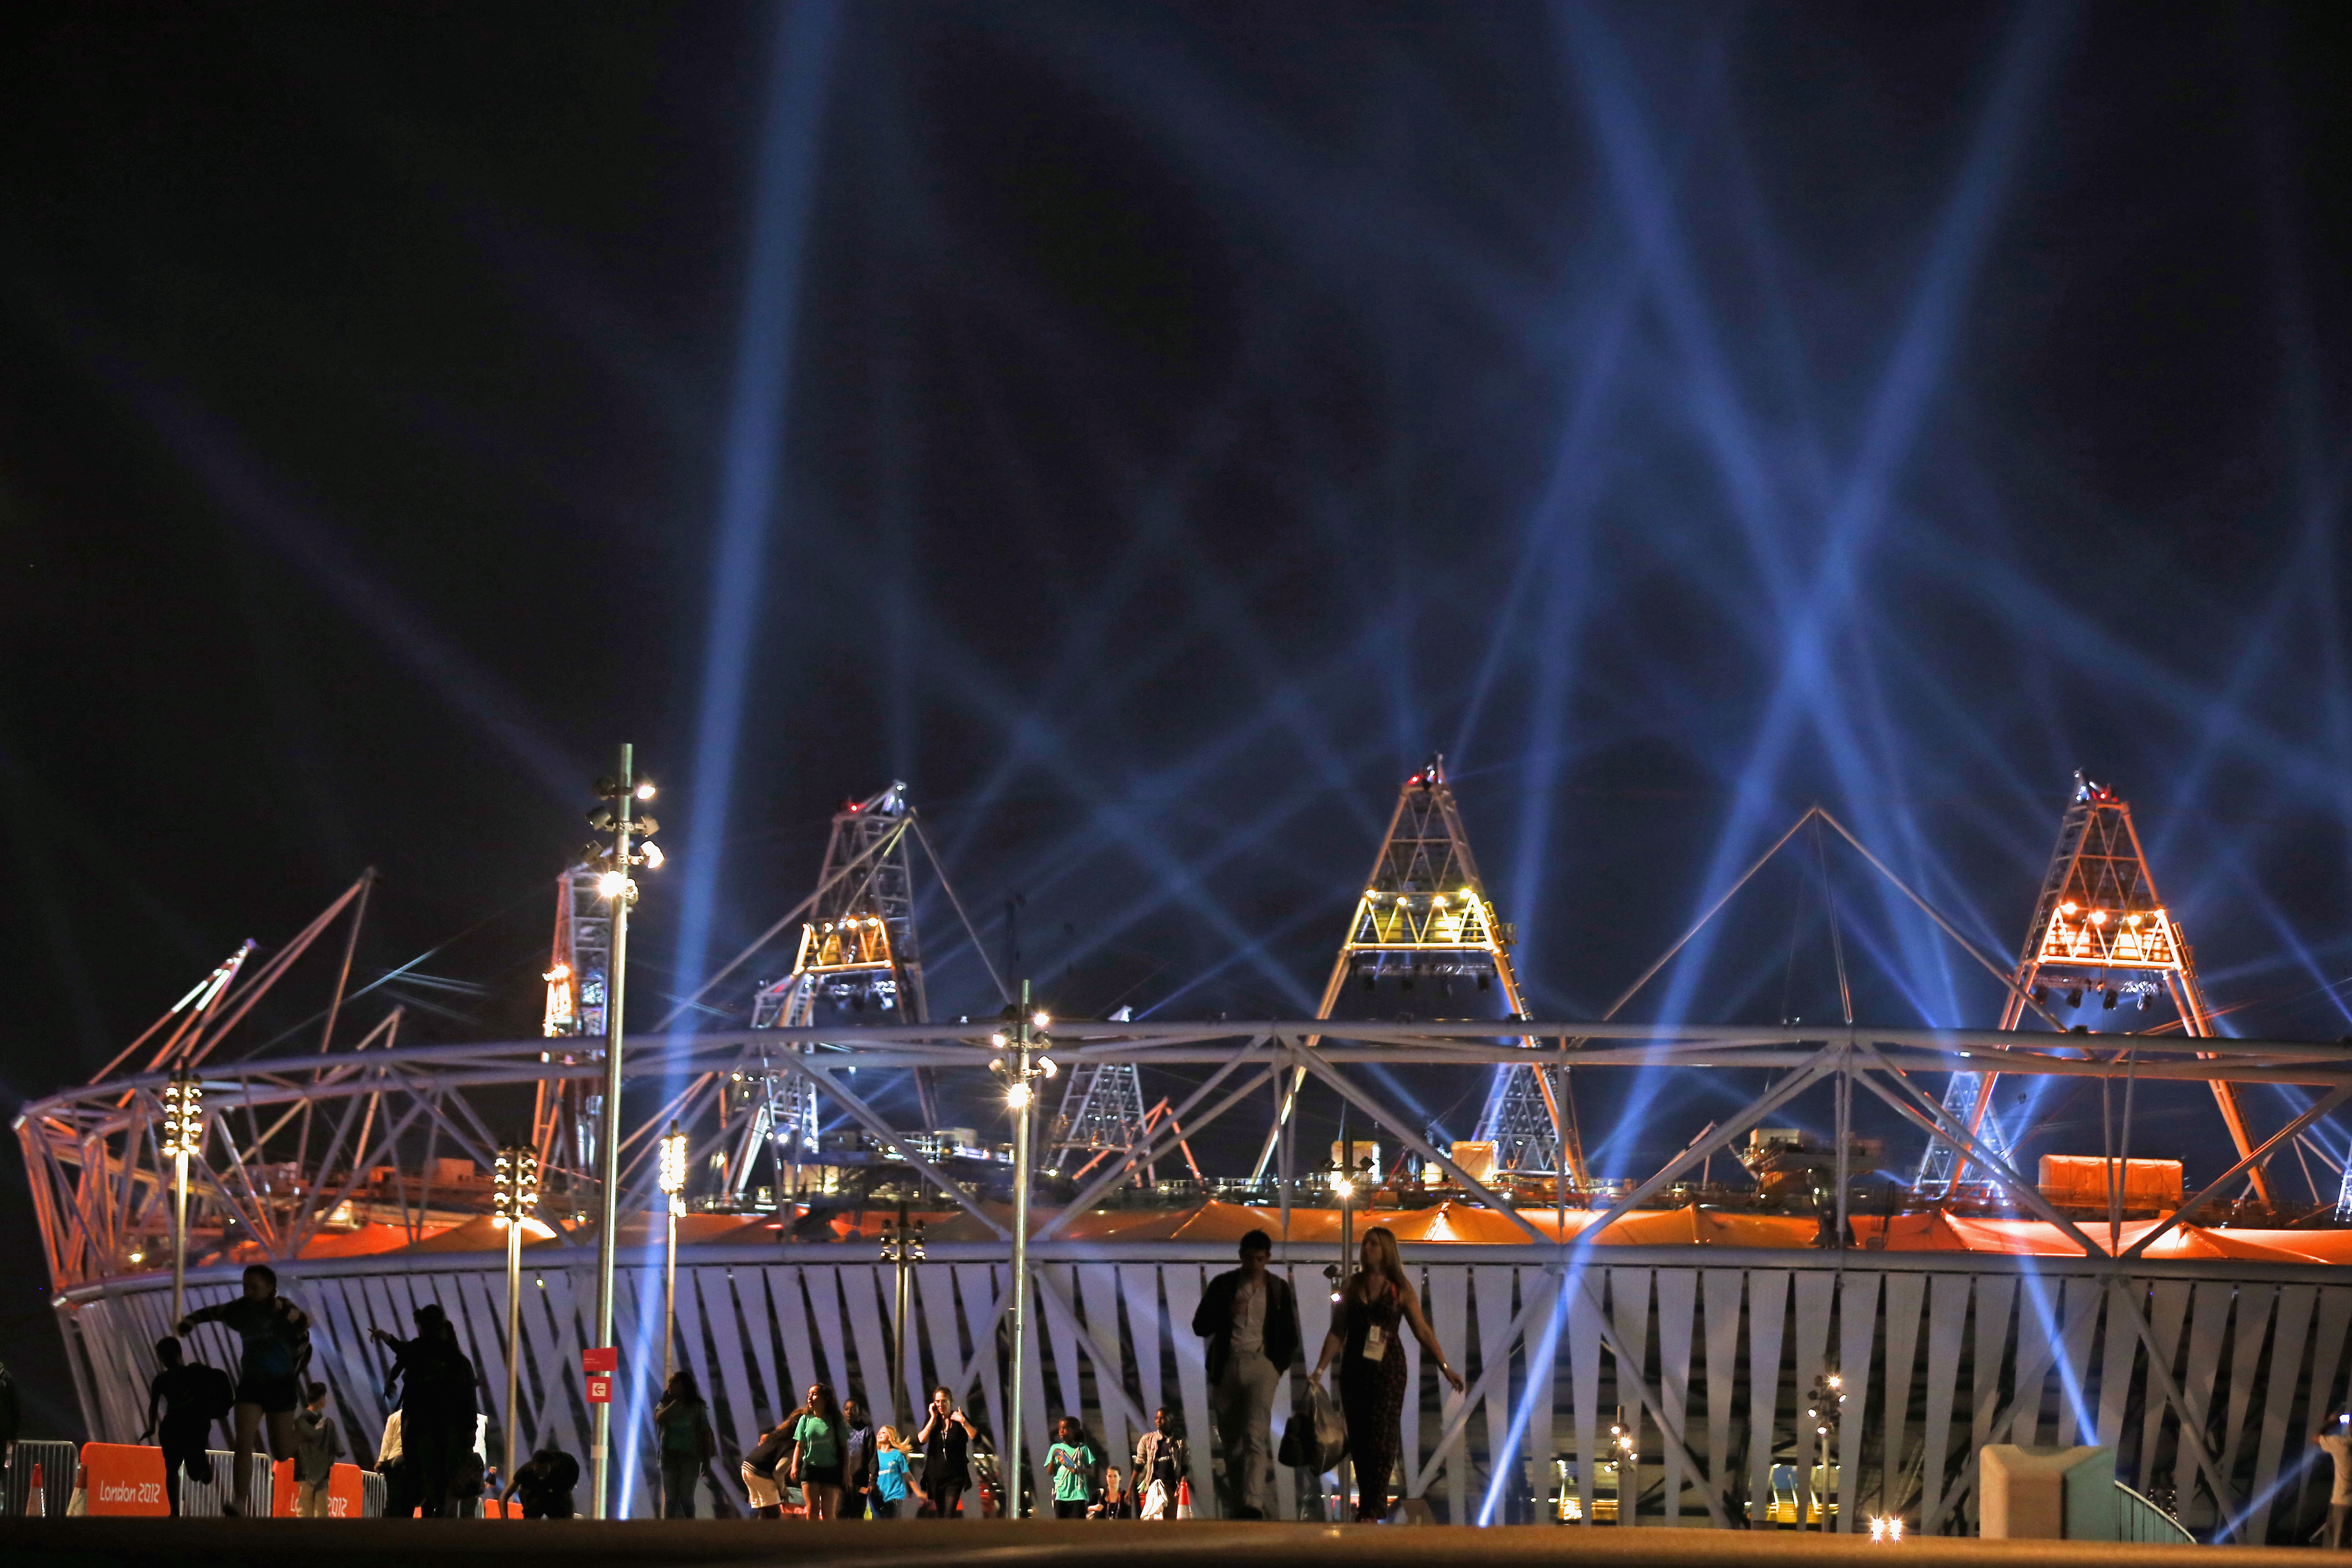 LONDON, ENGLAND - JULY 26: People walk from the Olympic Stadium following an Opening Ceremony rehearsal ahead of the London 2012 Olympics in the Olympic Park on July 26, 2012 in London, England.  (Photo by Jeff J Mitchell/Getty Images)